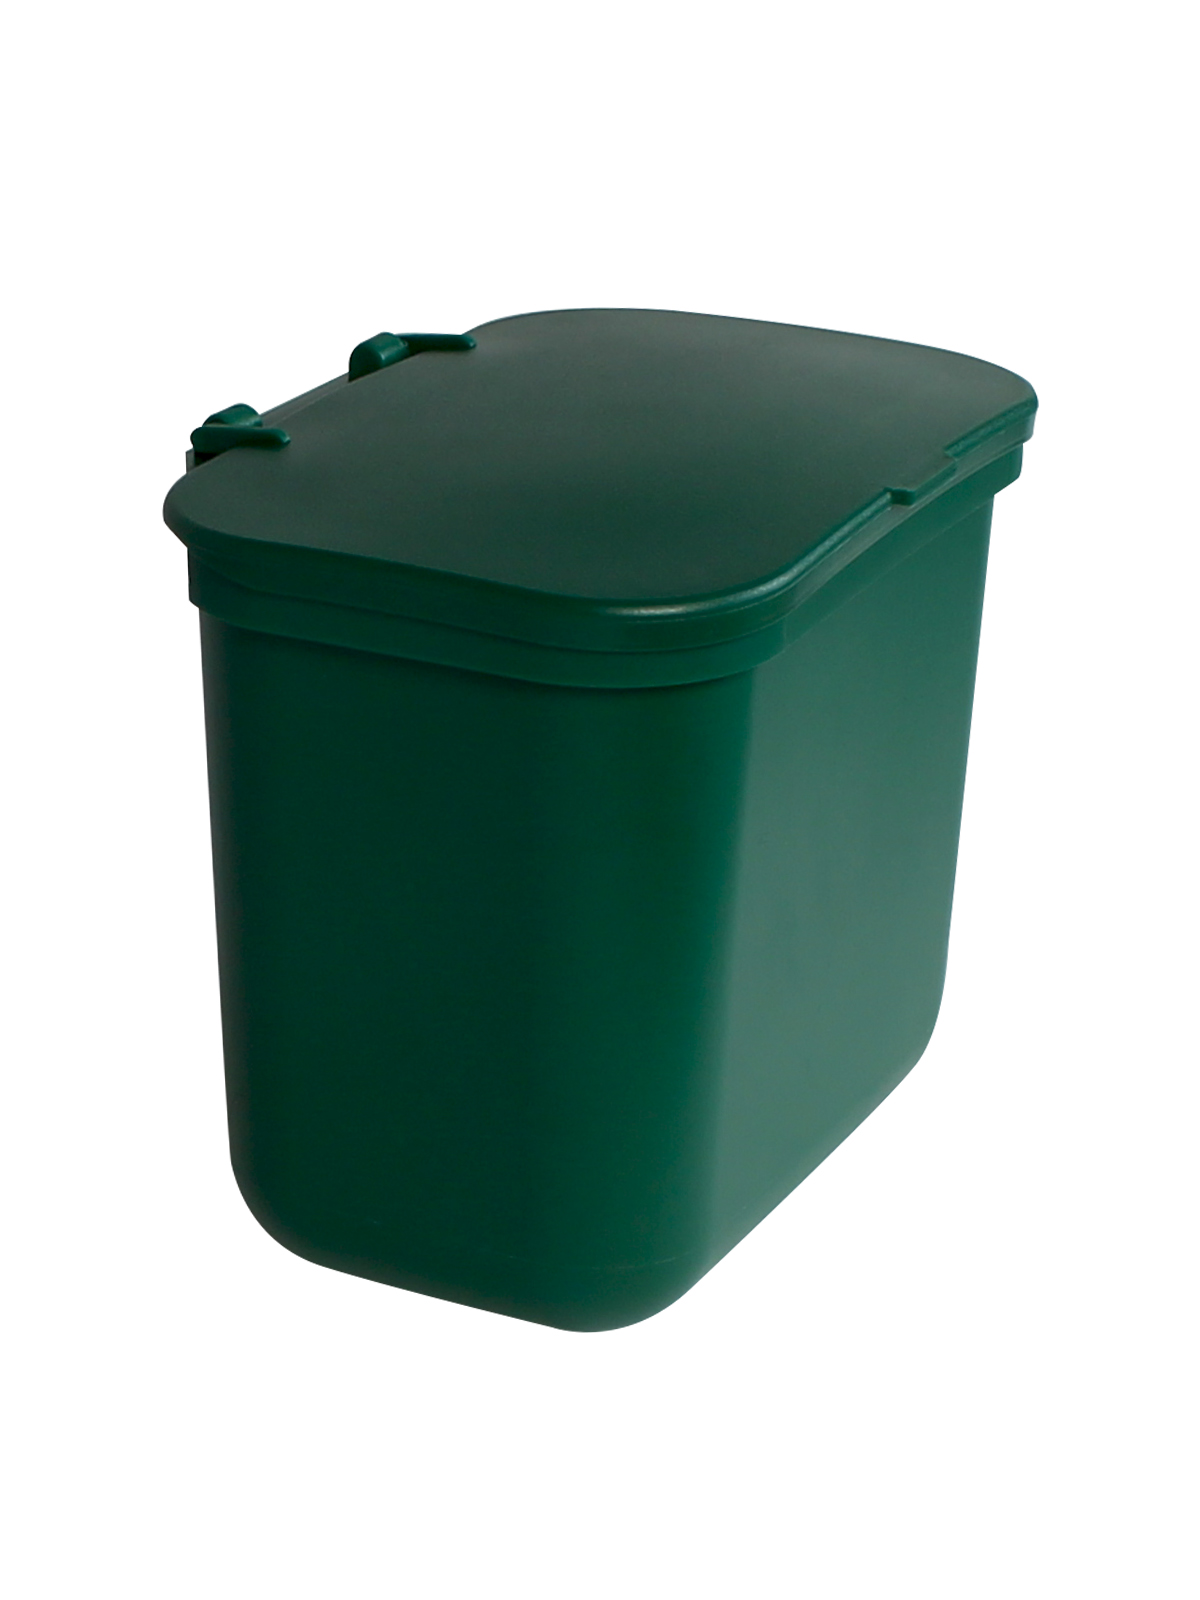 KIT HANGING WASTE BASKET W/ LID - GRN BLANK LID